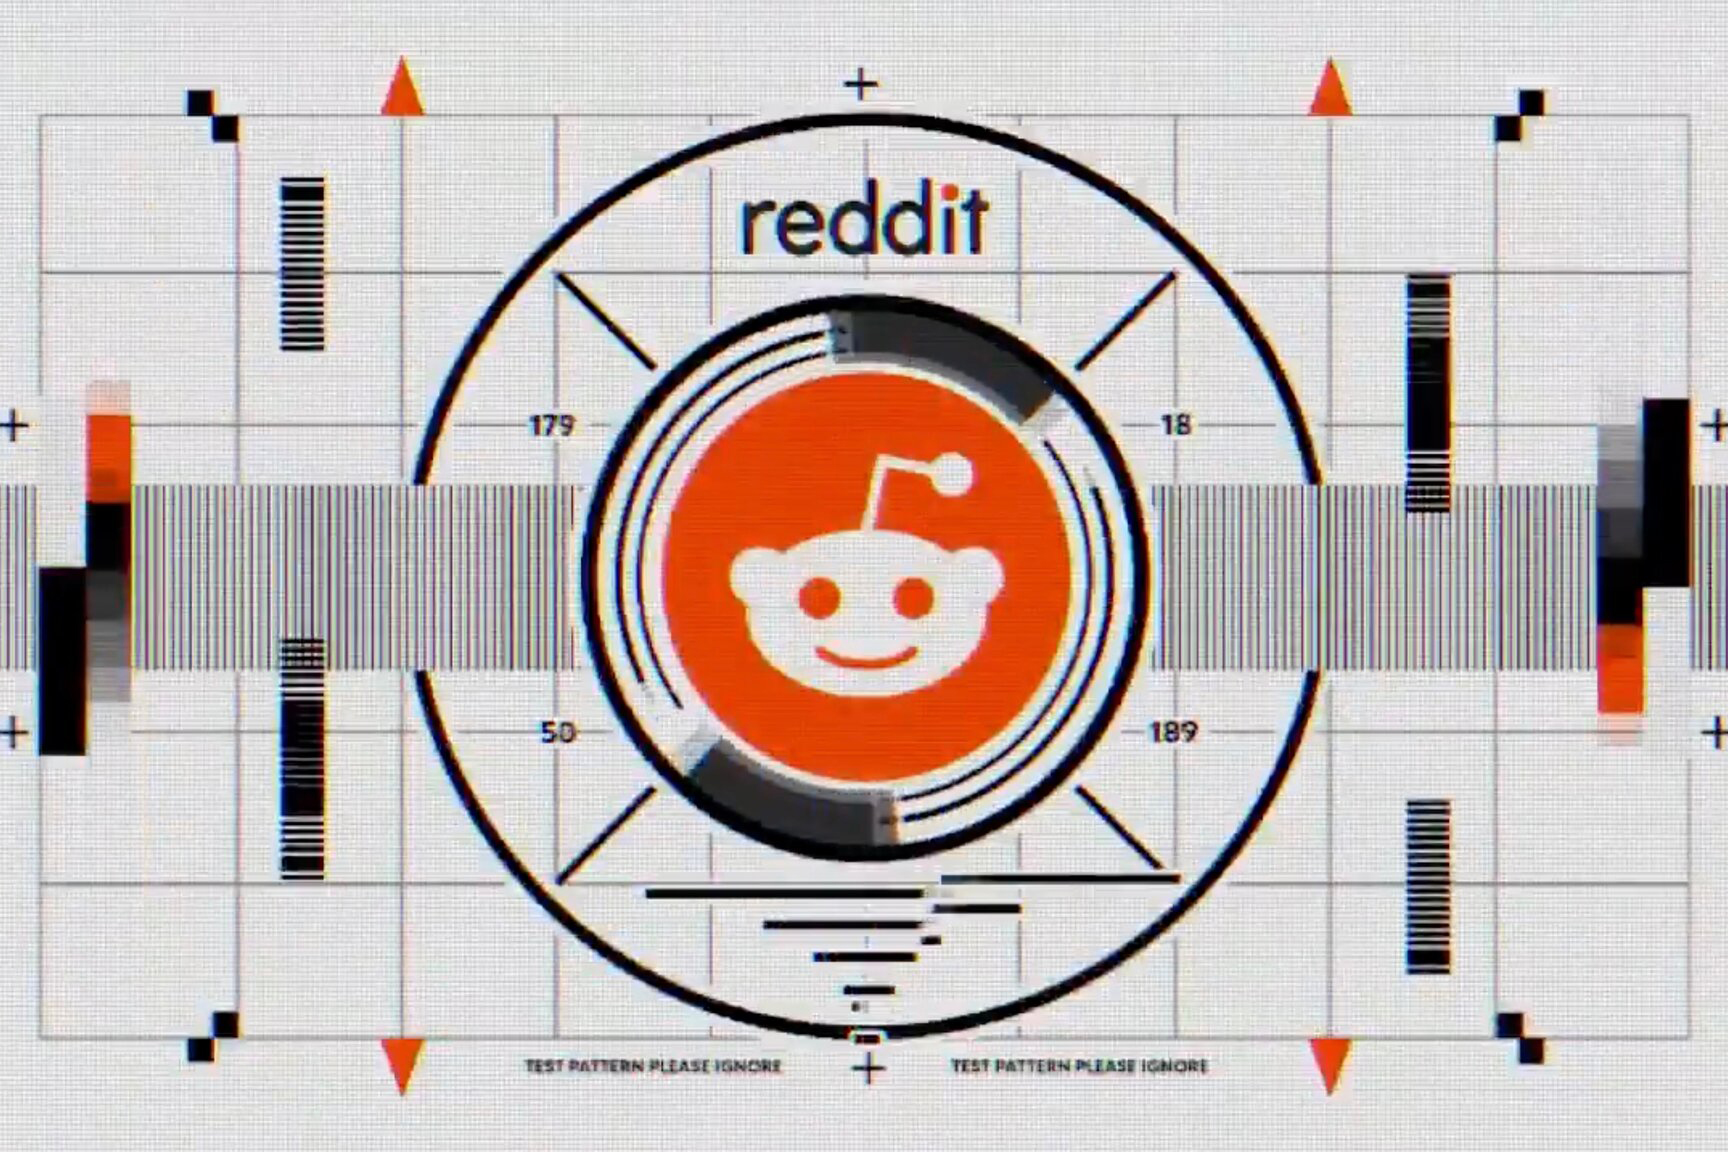 Amp spotlight: Why Reddit was the real winner of the Super Bowl